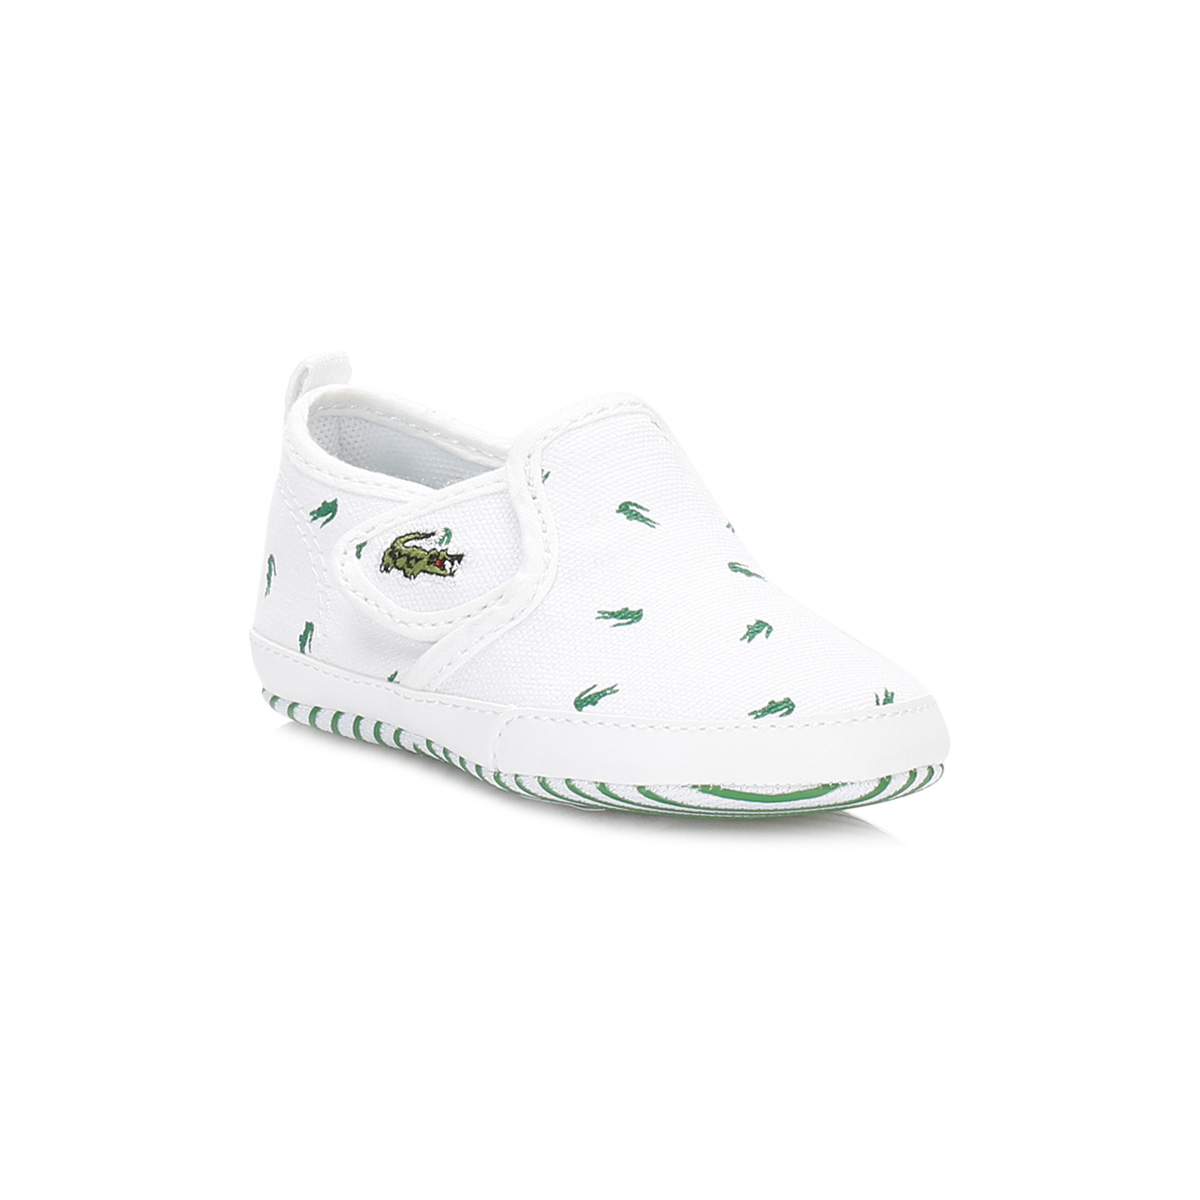 Lacoste Kids Boys Girls Trainers White Canvas Gazon Crib